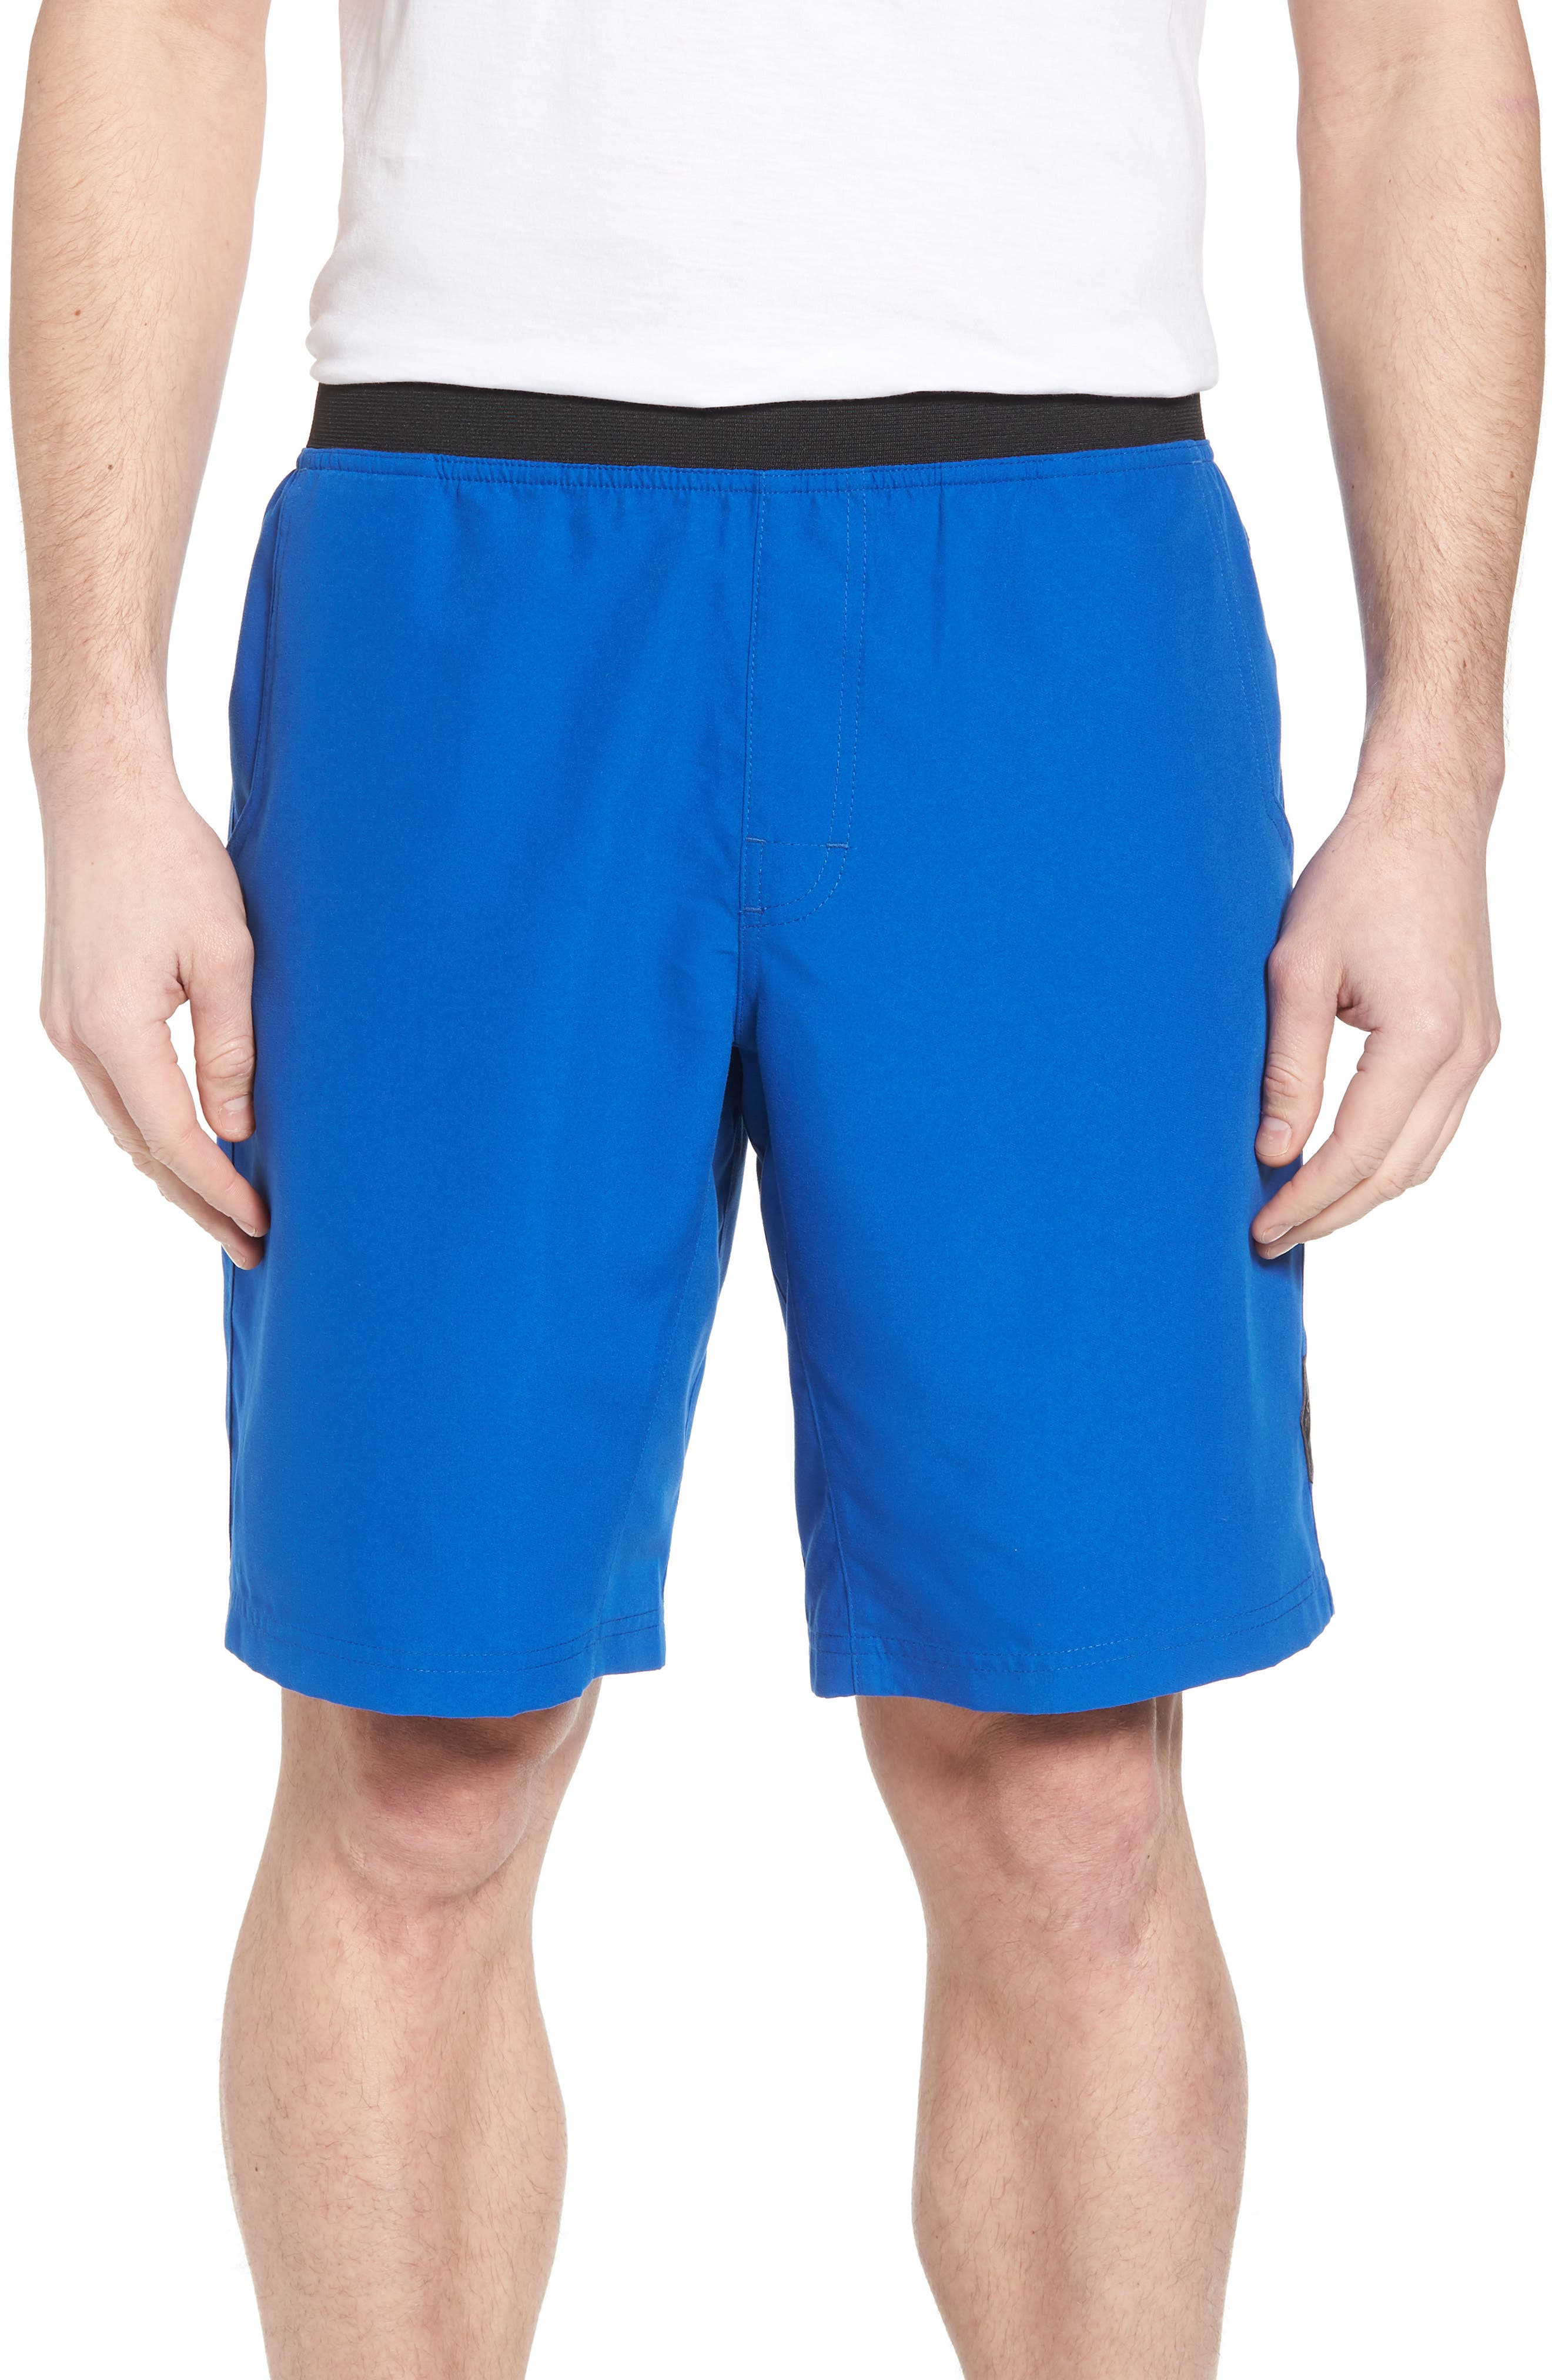 Mojo Shorts,                         Main,                         color,